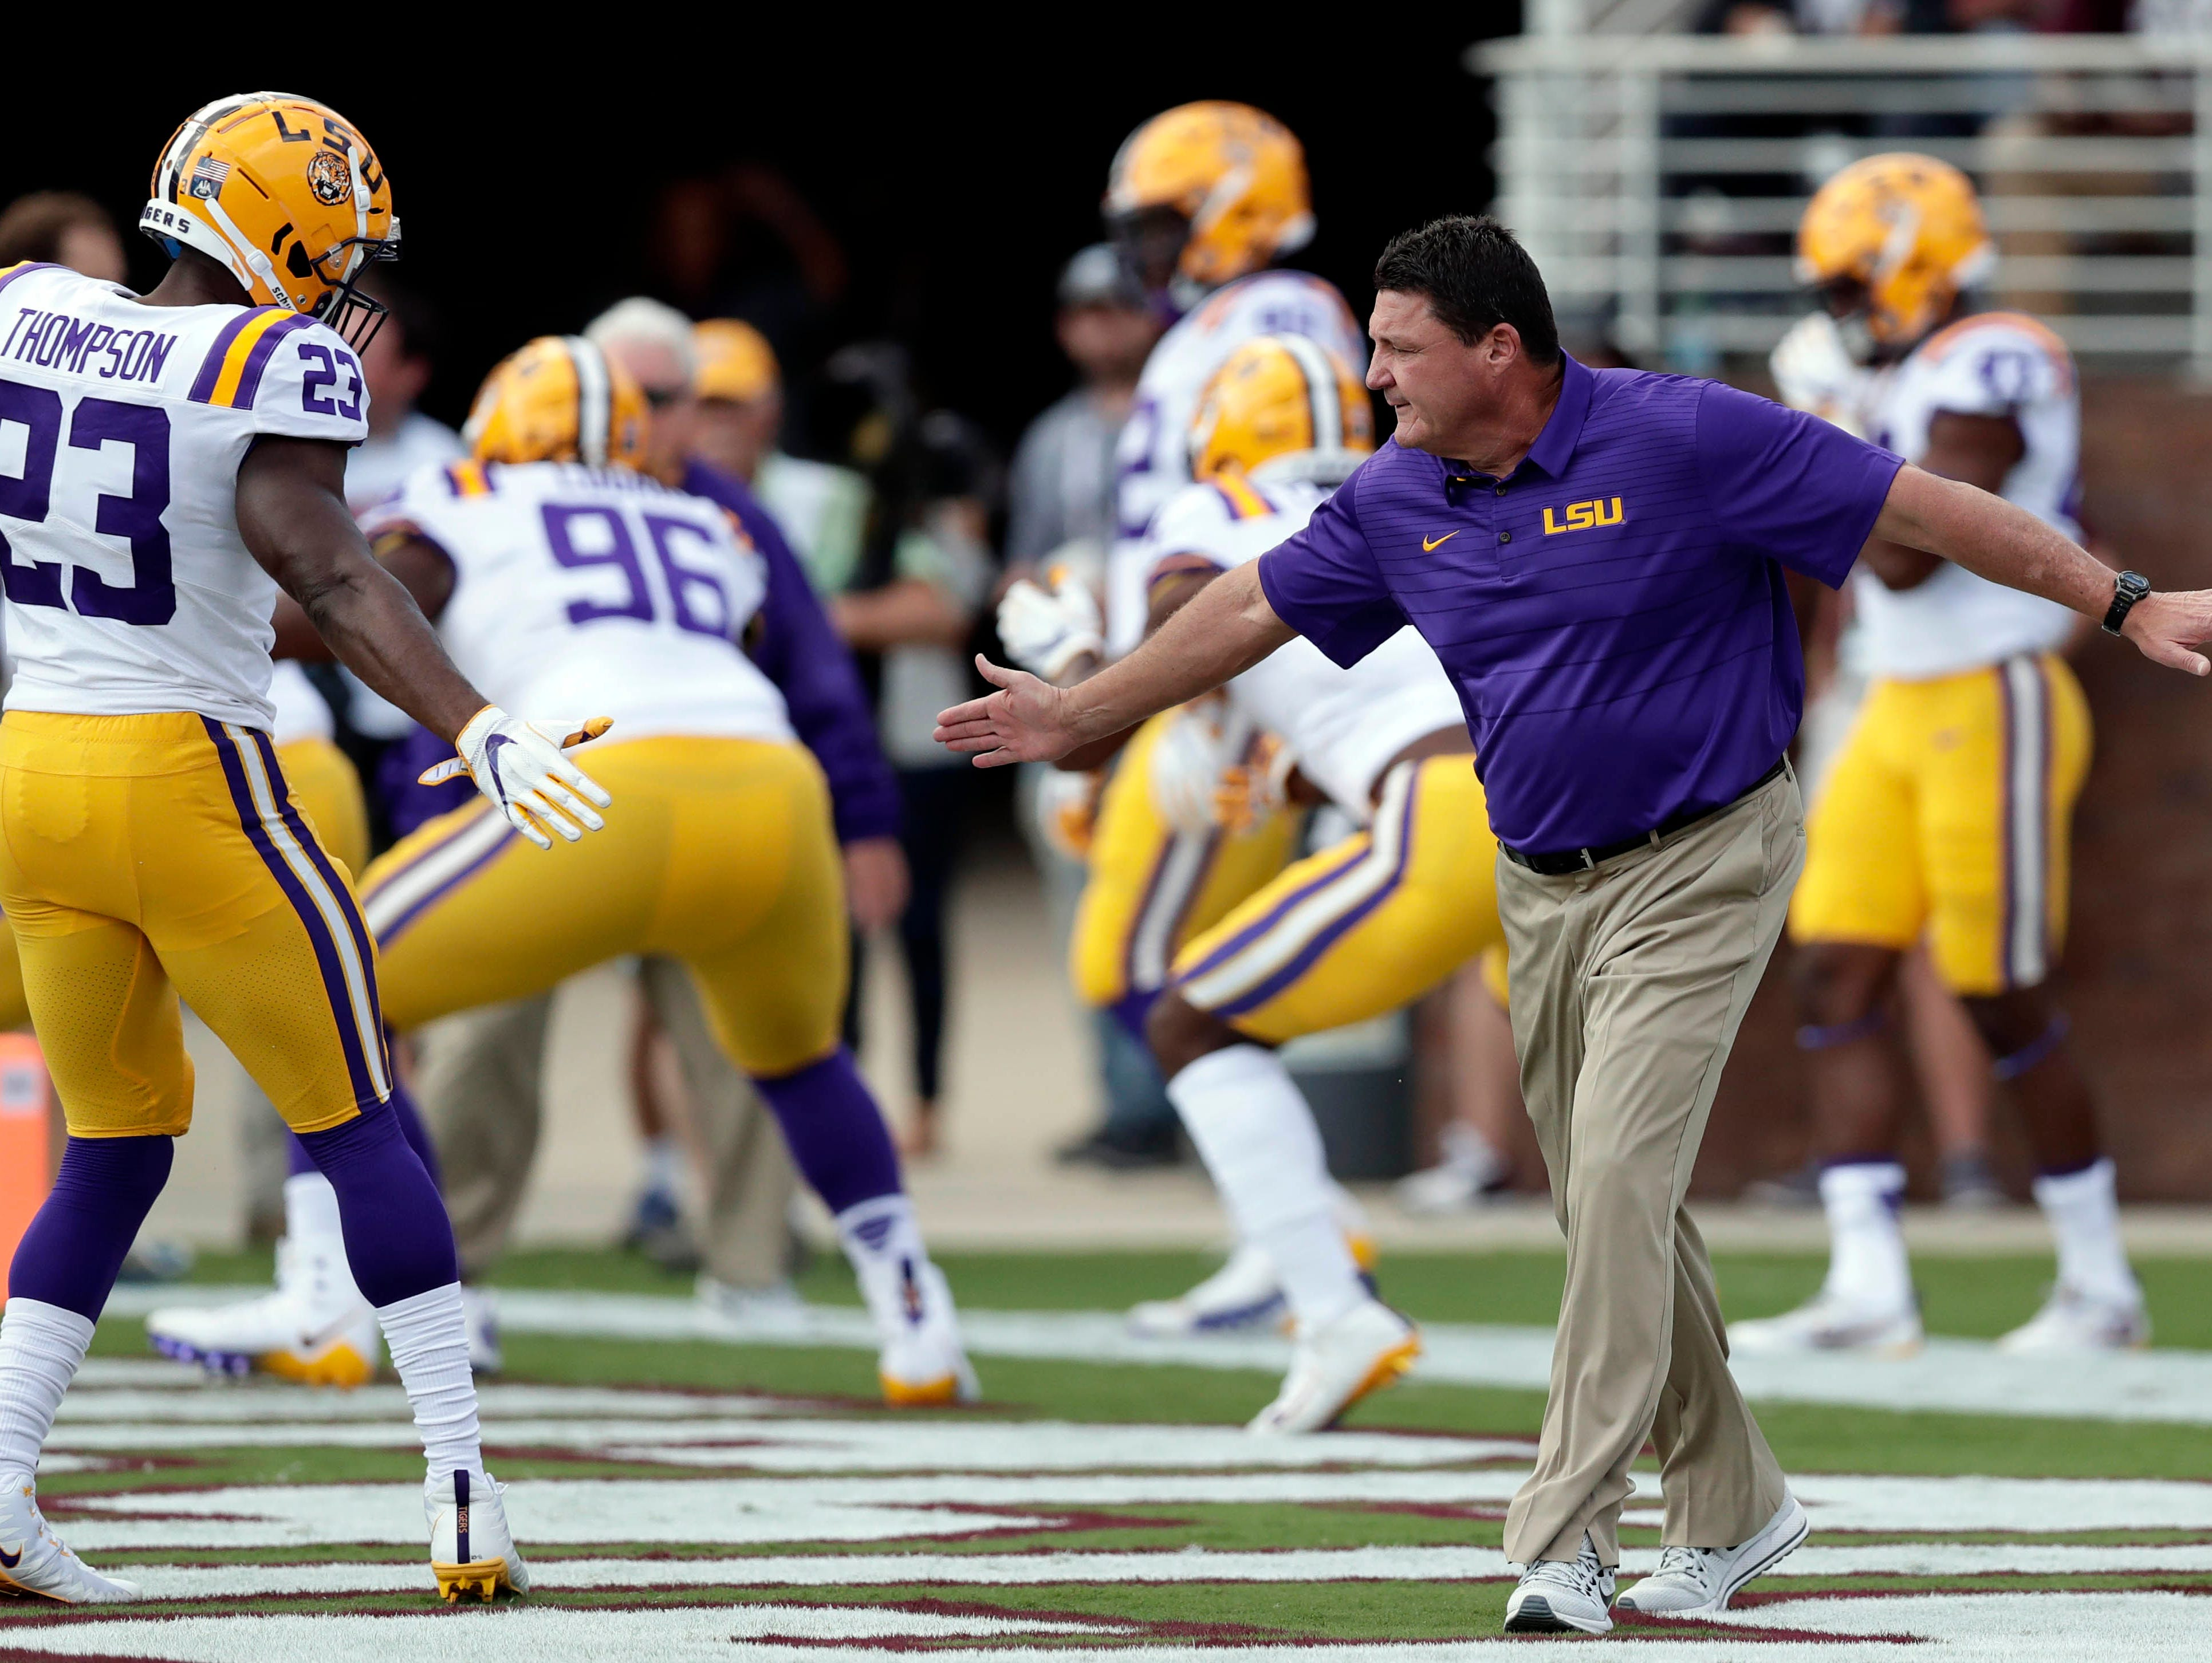 LSU head coach Ed Orgeron reaches out to LSU linebacker Corey Thompson (23) during the pregame warm up drills prior to their NCAA college football game against Mississippi State in Starkville, Miss., Saturday, Sept. 16, 2017.